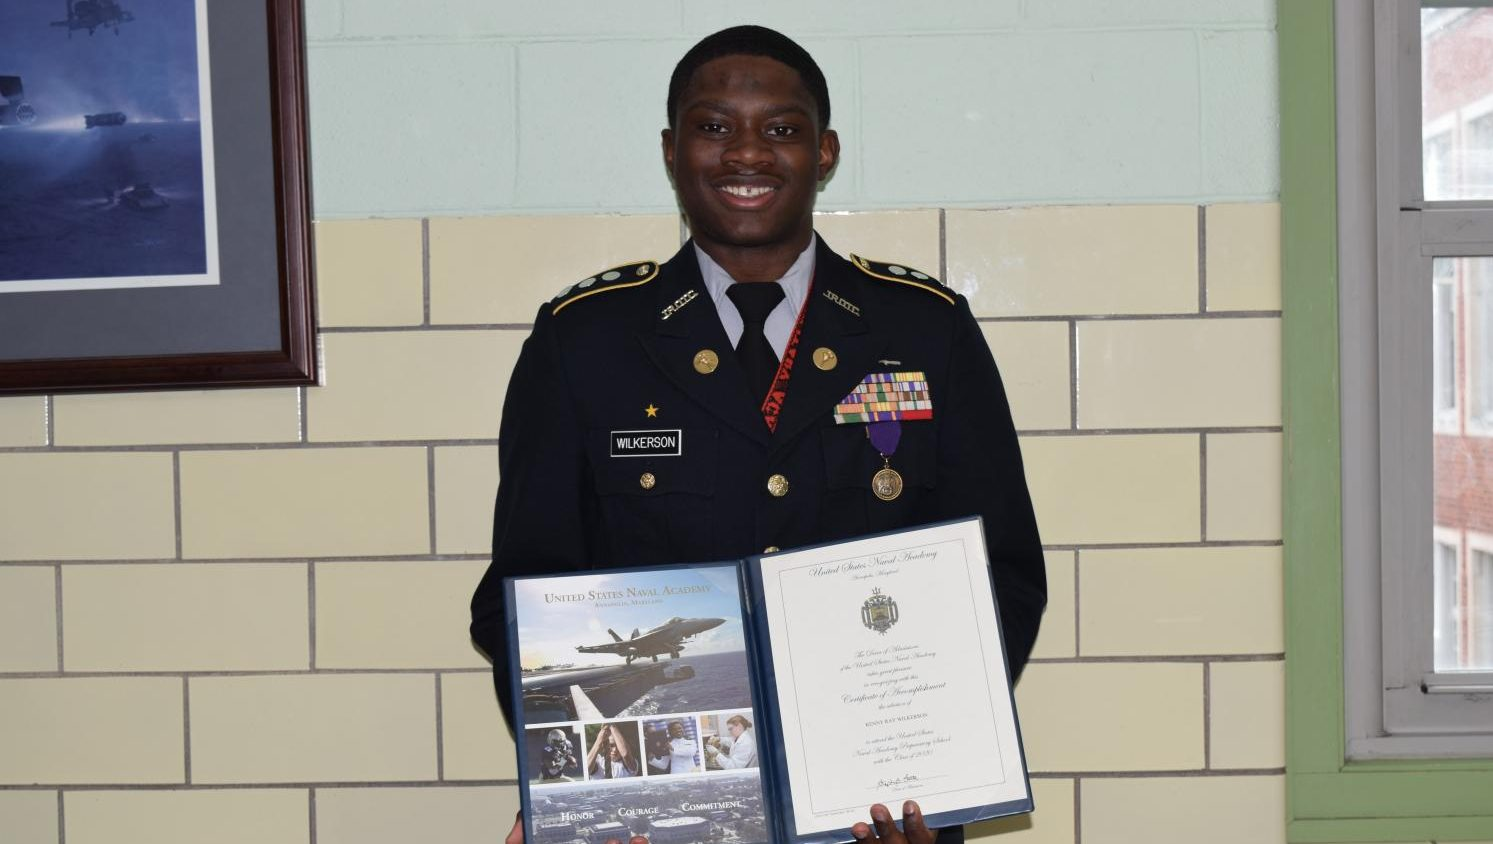 Wilkerson to U.S Naval Academy